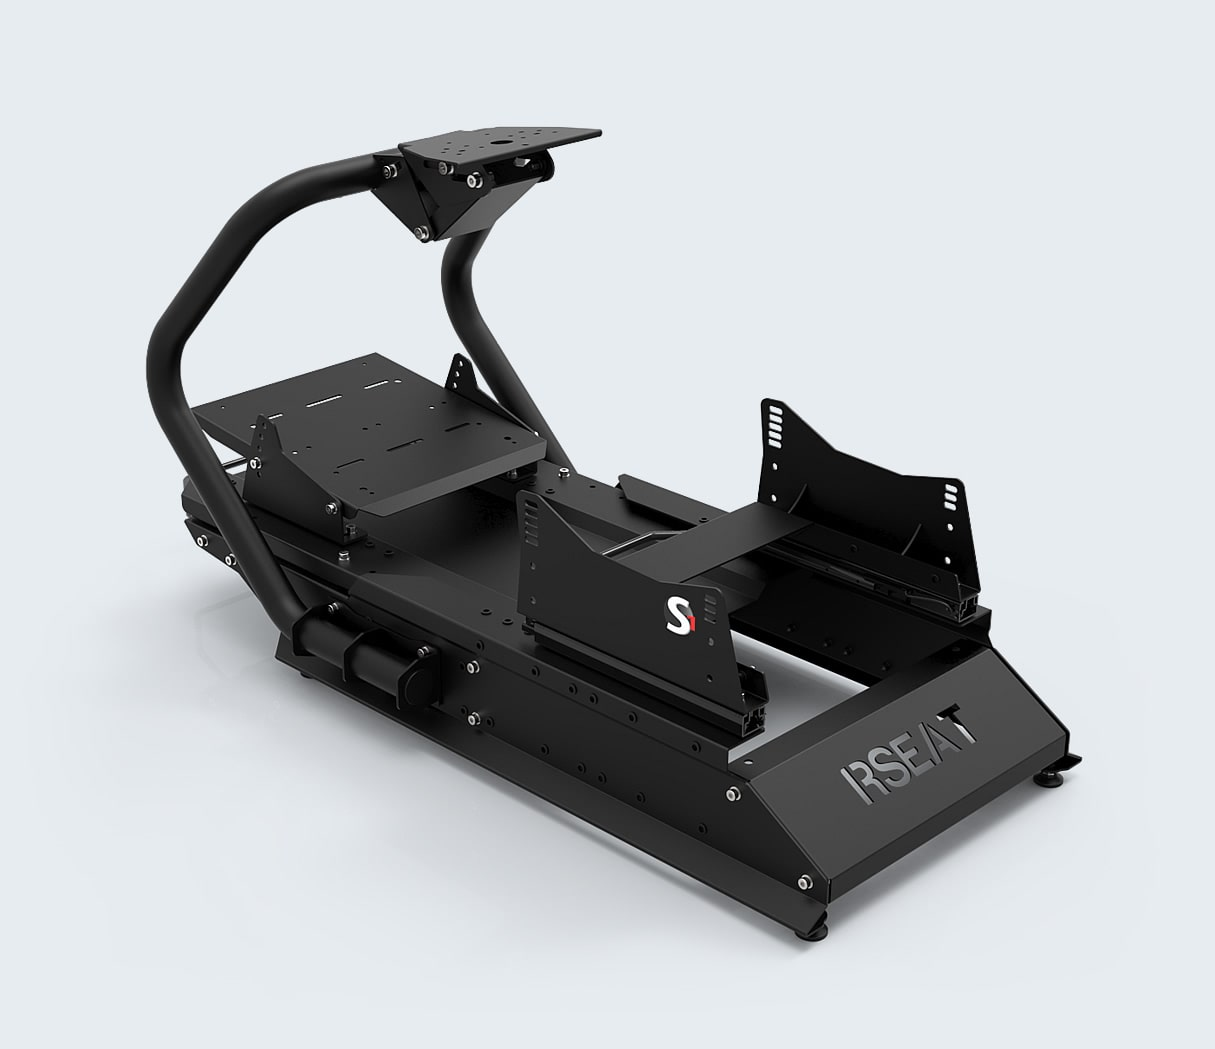 RSeat S1